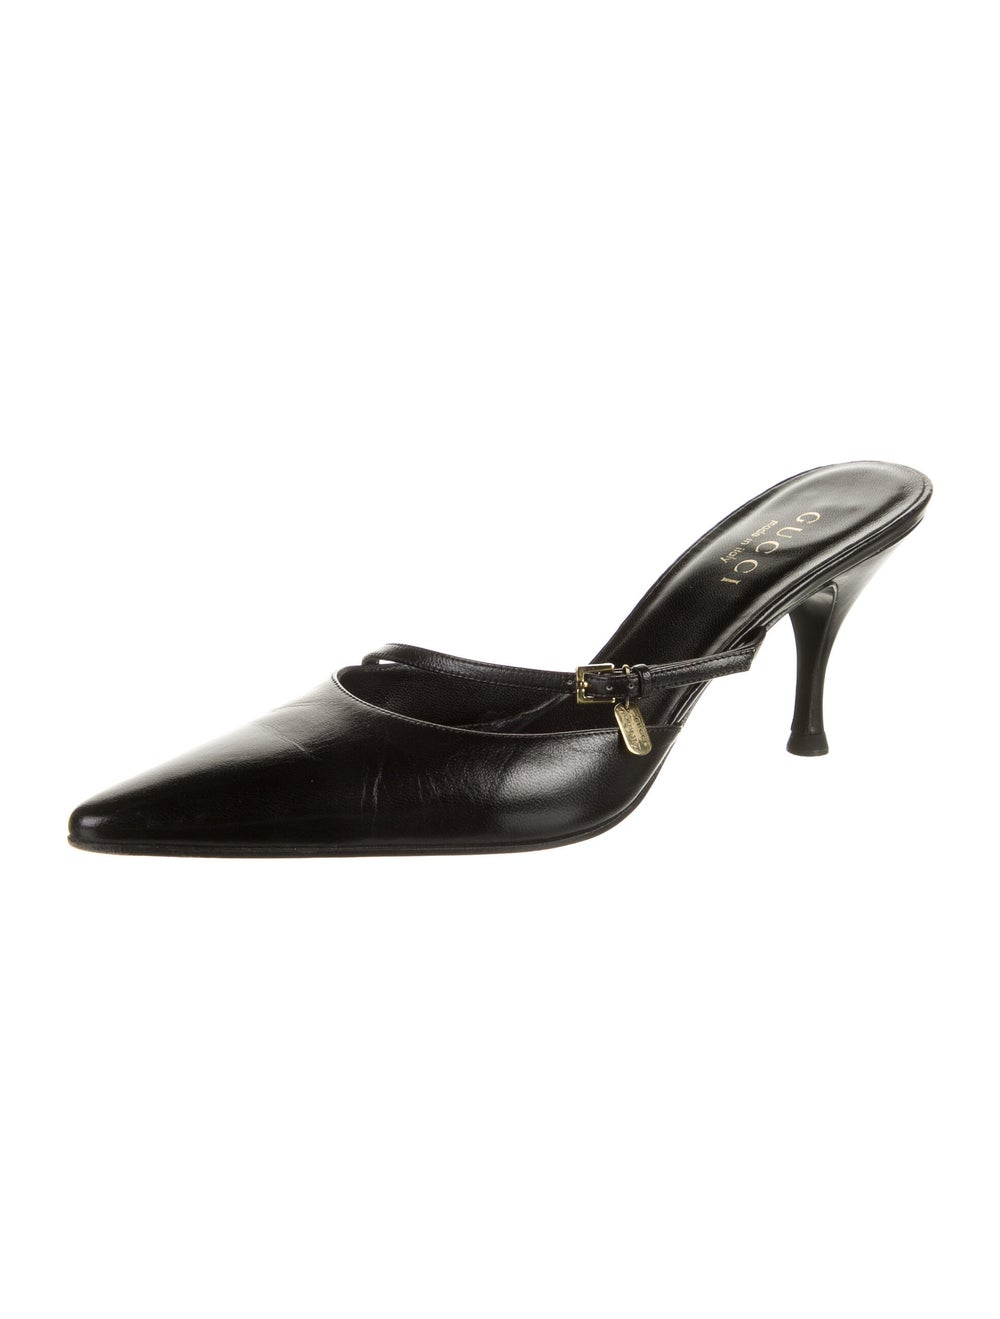 Gucci Leather Mules Black - image 2